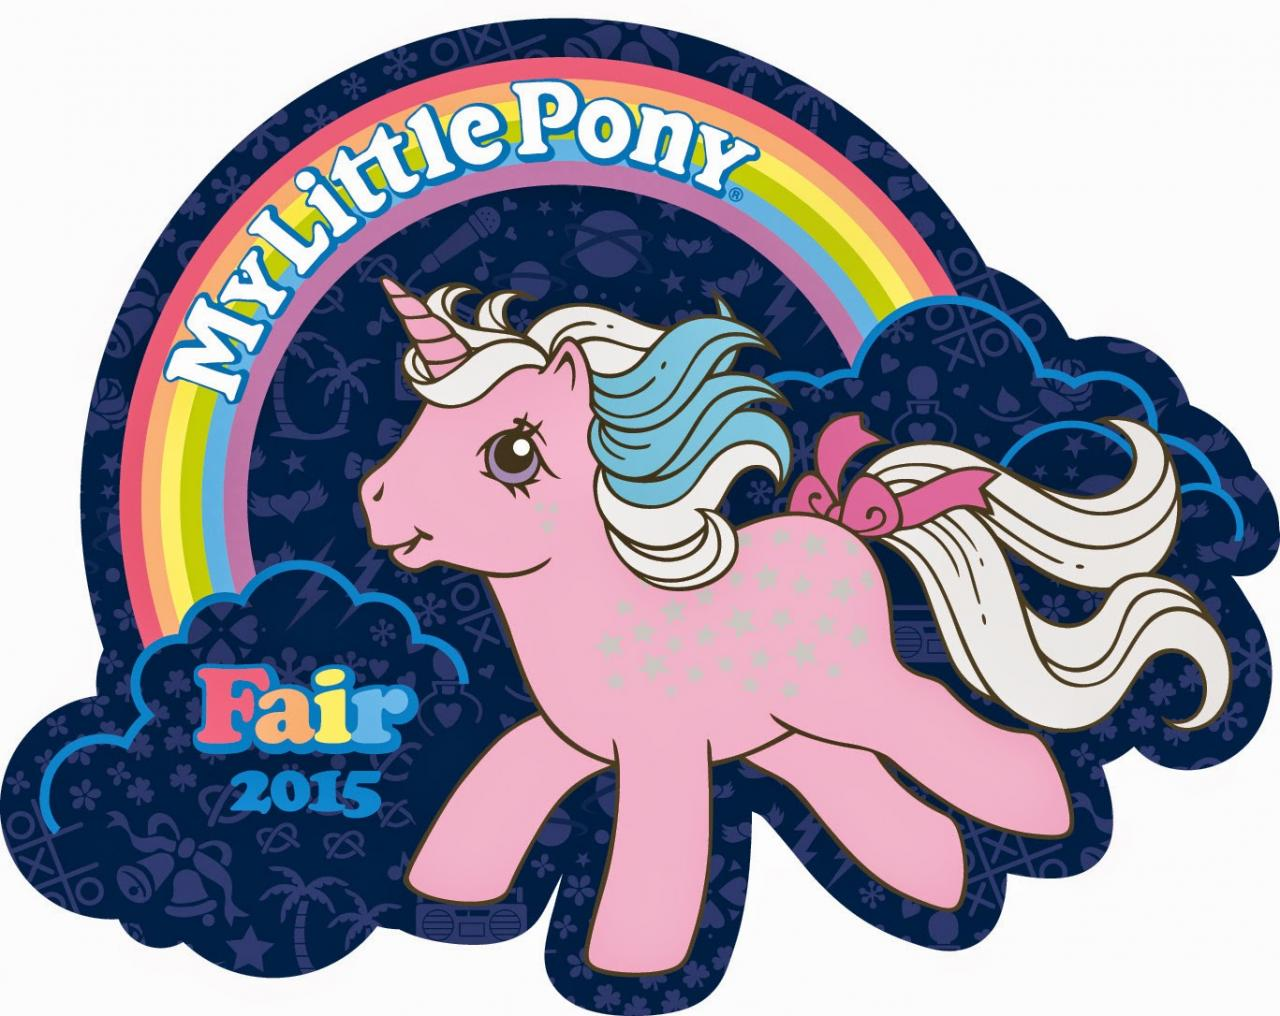 MY LITTLE PONY Fair 2015 Updates!